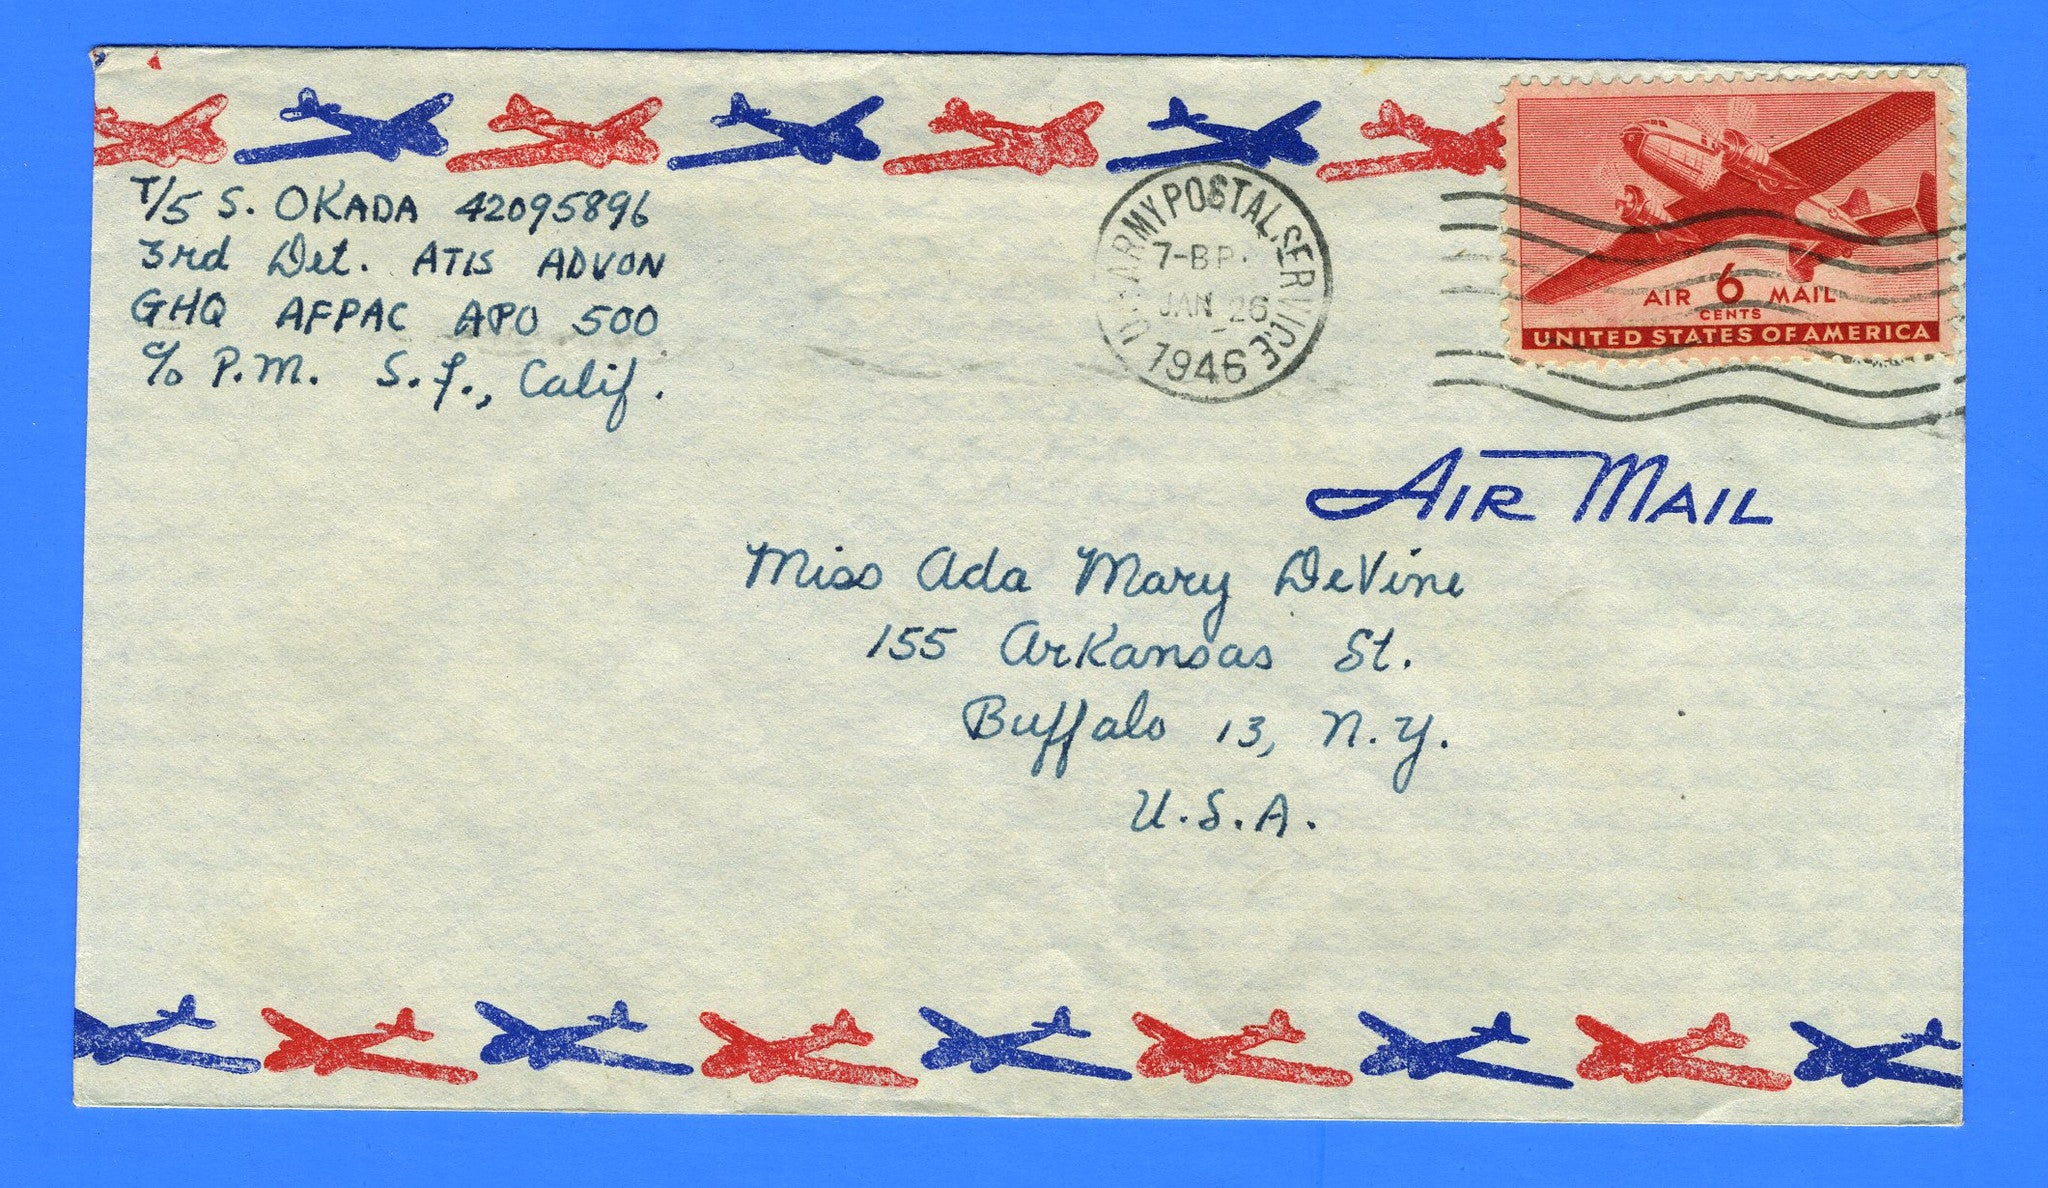 Afpac pour soldier's mail apo 500 tokyo, japan january 26, 1946 | great